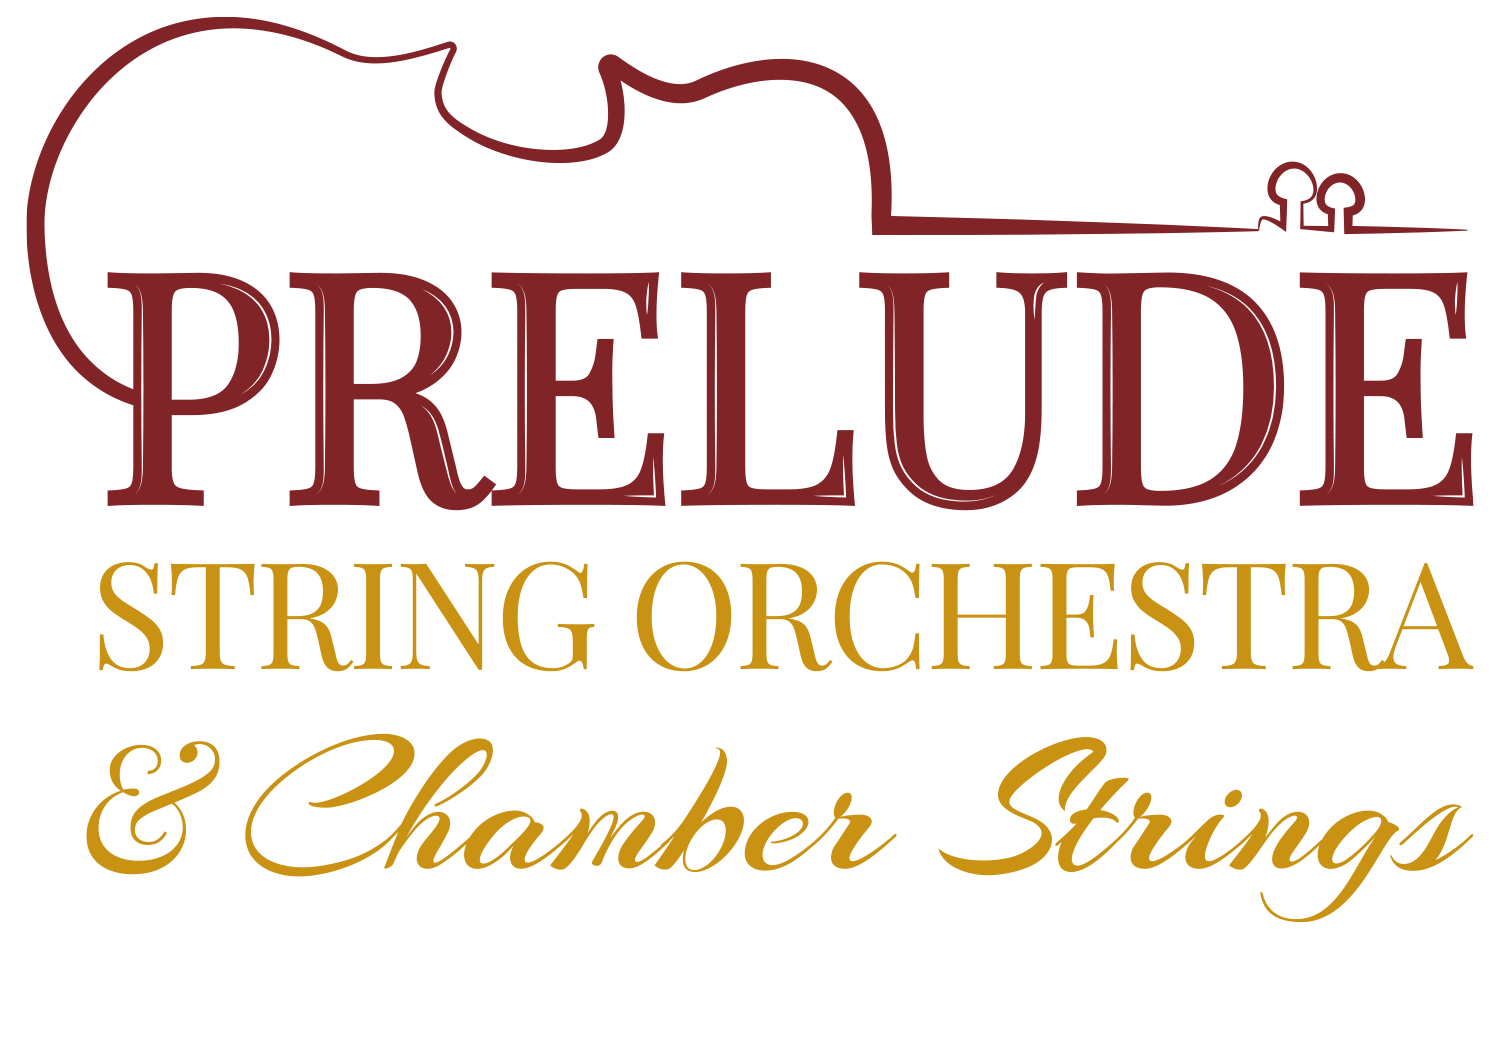 Prelude String Orchestra